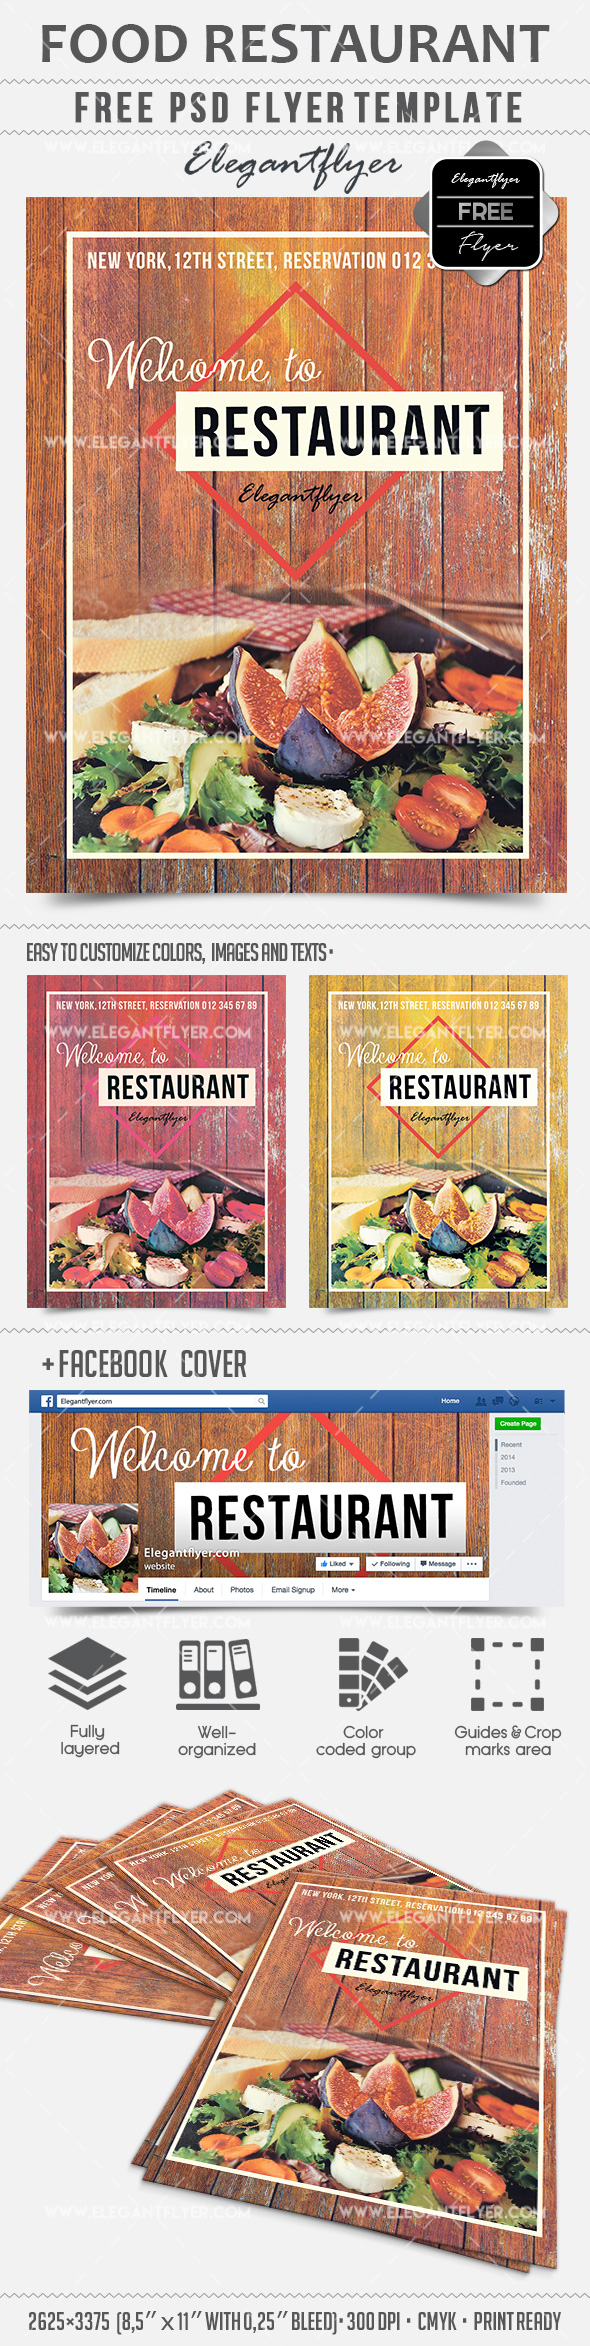 Food Restaurant – Free PSD Template + Facebook cover